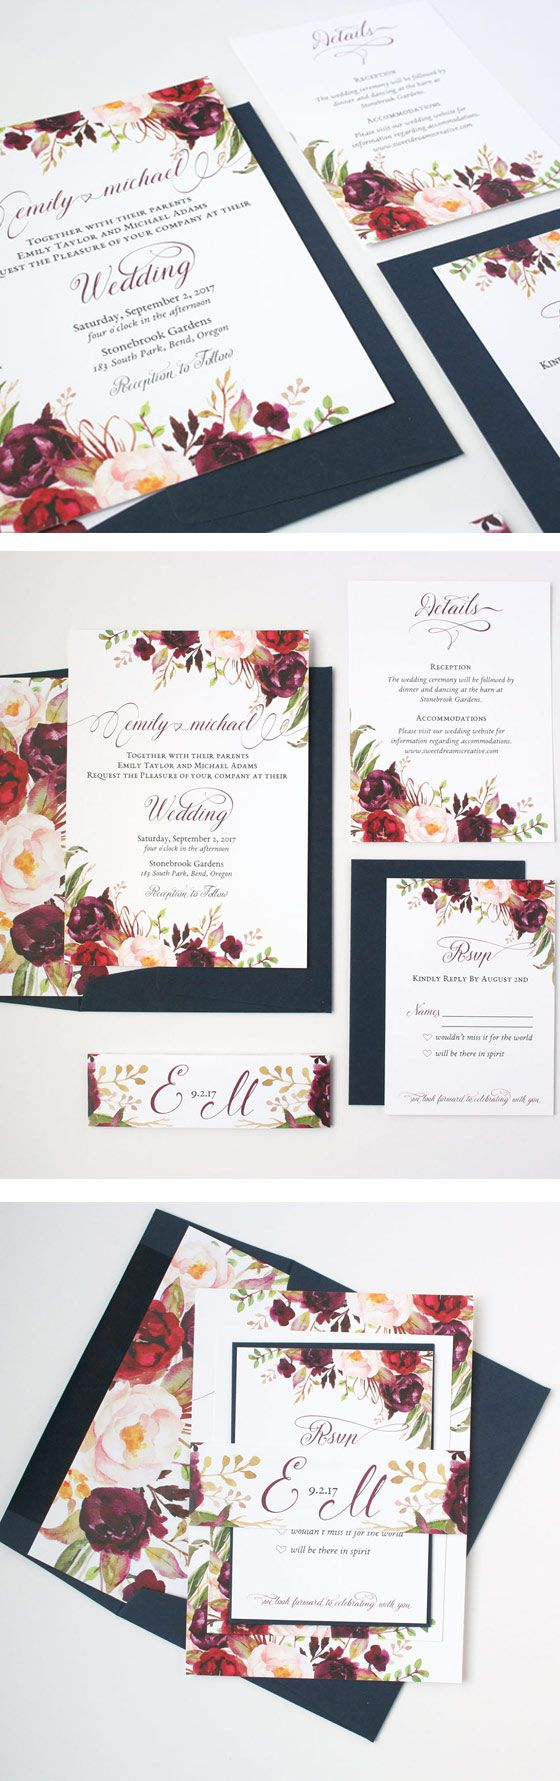 how much do invitations for wedding cost%0A Lovely navy and burgundy wedding invitations